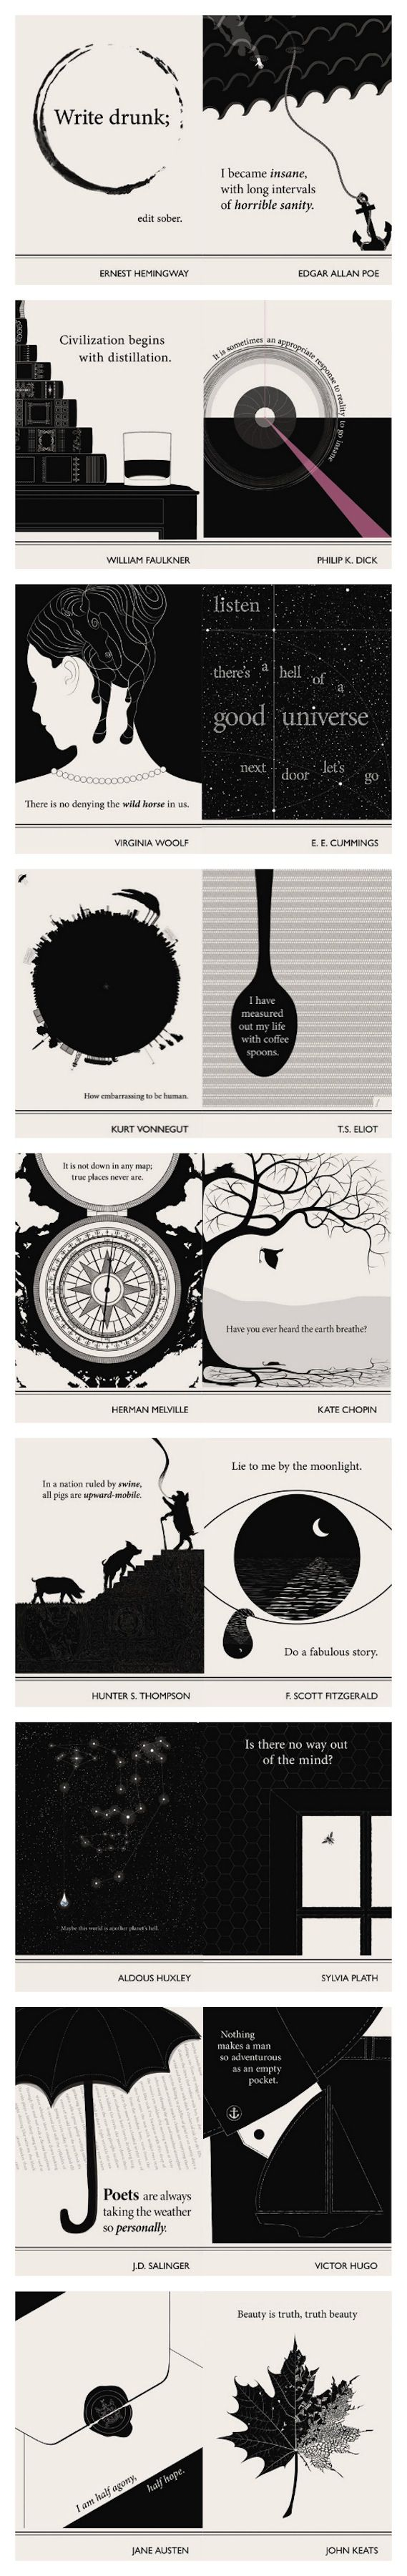 Lovely Literary Art Prints featuring quotes By Famous Authors by Evan Robertson